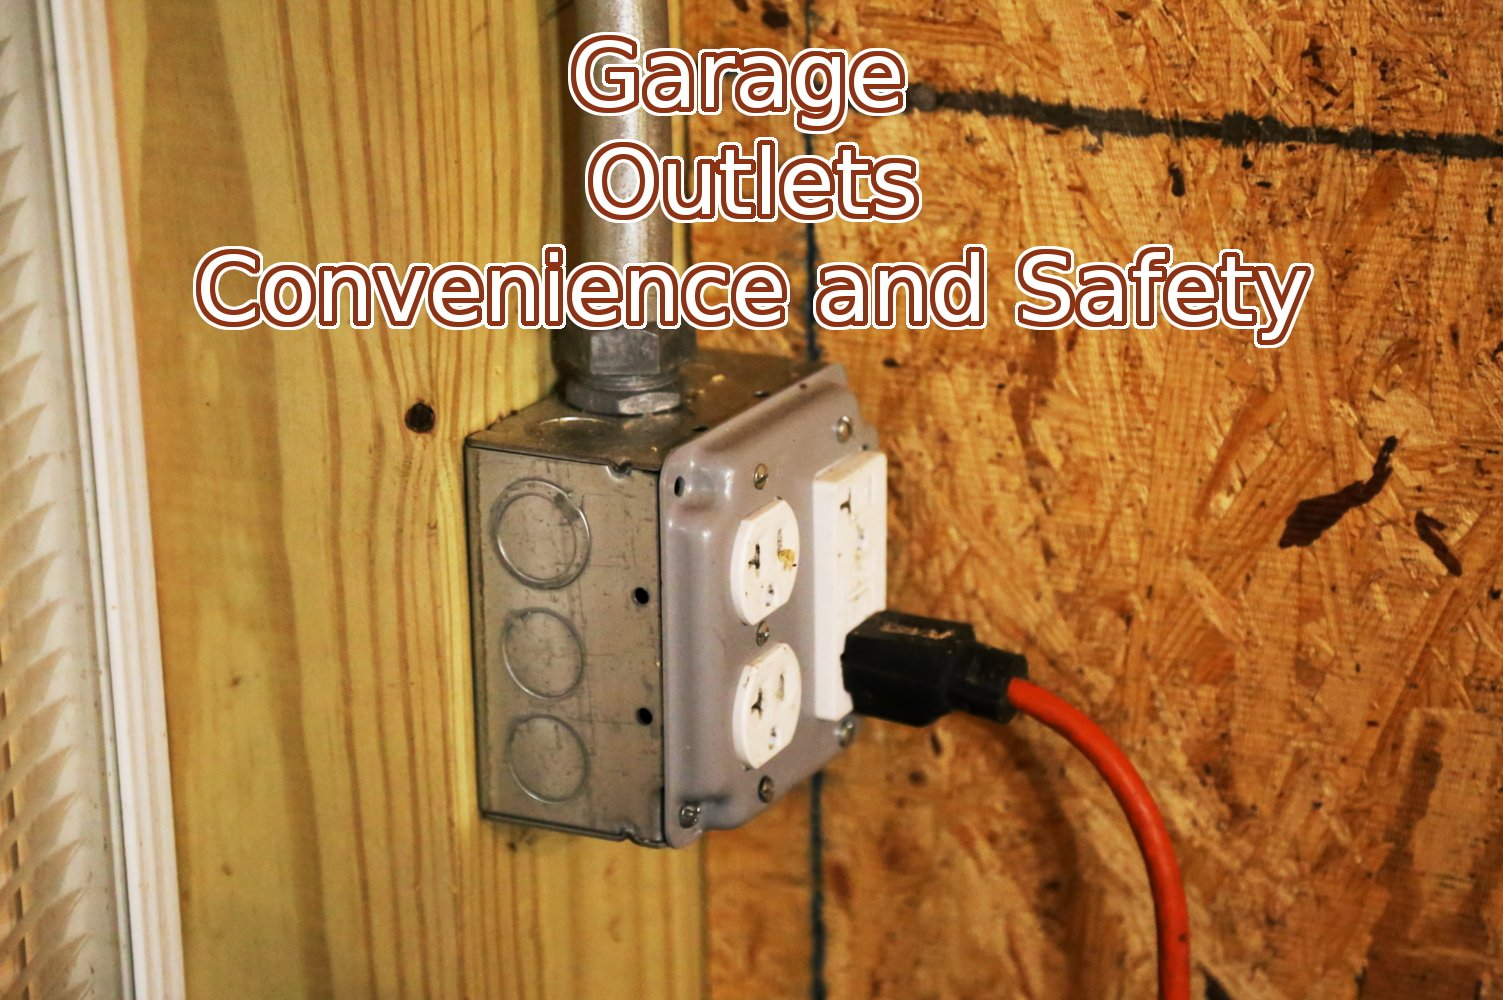 Crofton Electrician - Garage Outlets, Lighting & Wiring ... on garage walls, garage fans, garage wood, electric motor, earthing system, garage windows, garage building, garage bathrooms, garage furniture, electrical engineering, electric power distribution, garage carpet, garage receptacles, power cord, ground and neutral, garage plumbing, wiring diagram, national electrical code, garage roof, power cable, junction box, extension cord, garage air conditioning, garage drywall, knob-and-tube wiring, garage ceilings, three-phase electric power, distribution board, alternating current, garage sensors, garage construction, garage siding, circuit breaker, electrical conduit, garage painting, garage foundation, garage design,